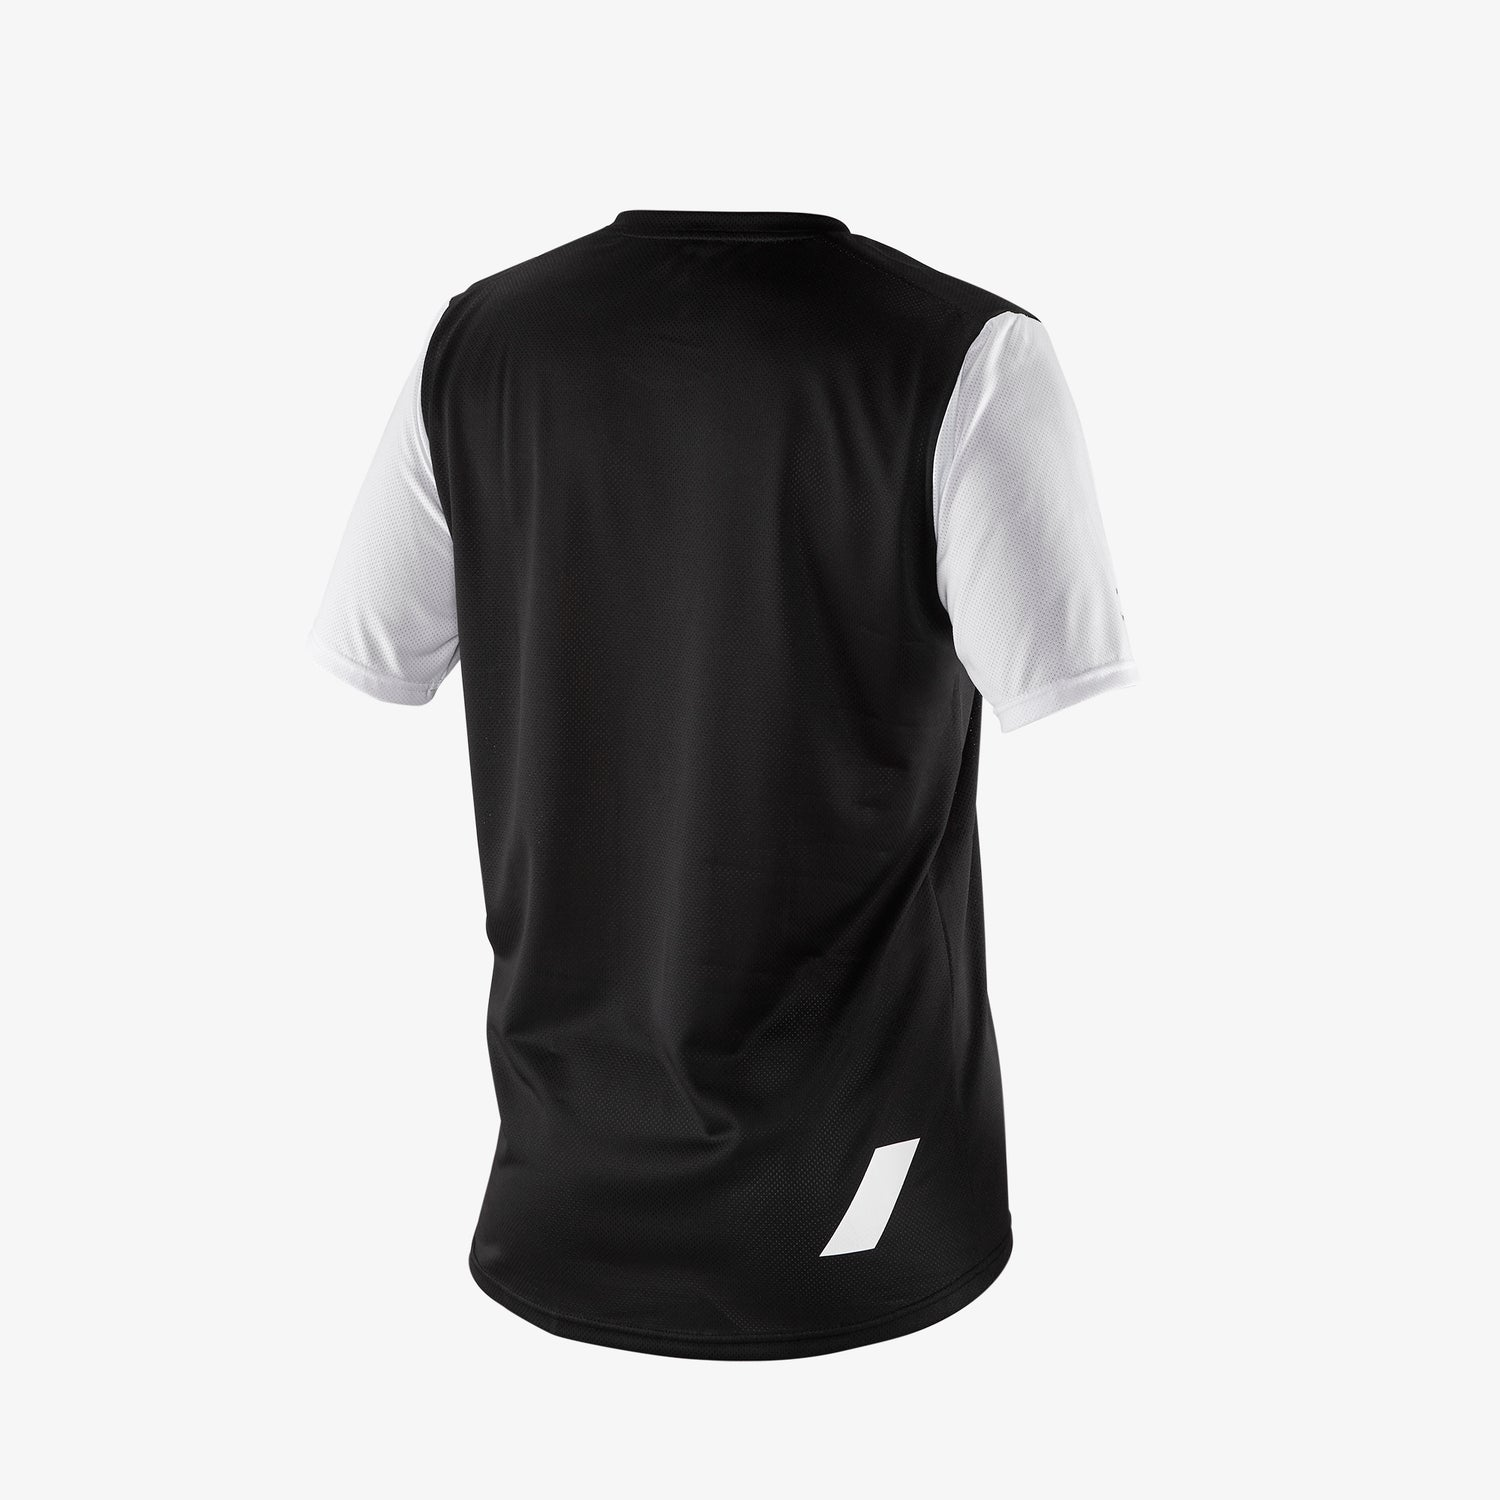 RIDECAMP Jersey - Black - Youth